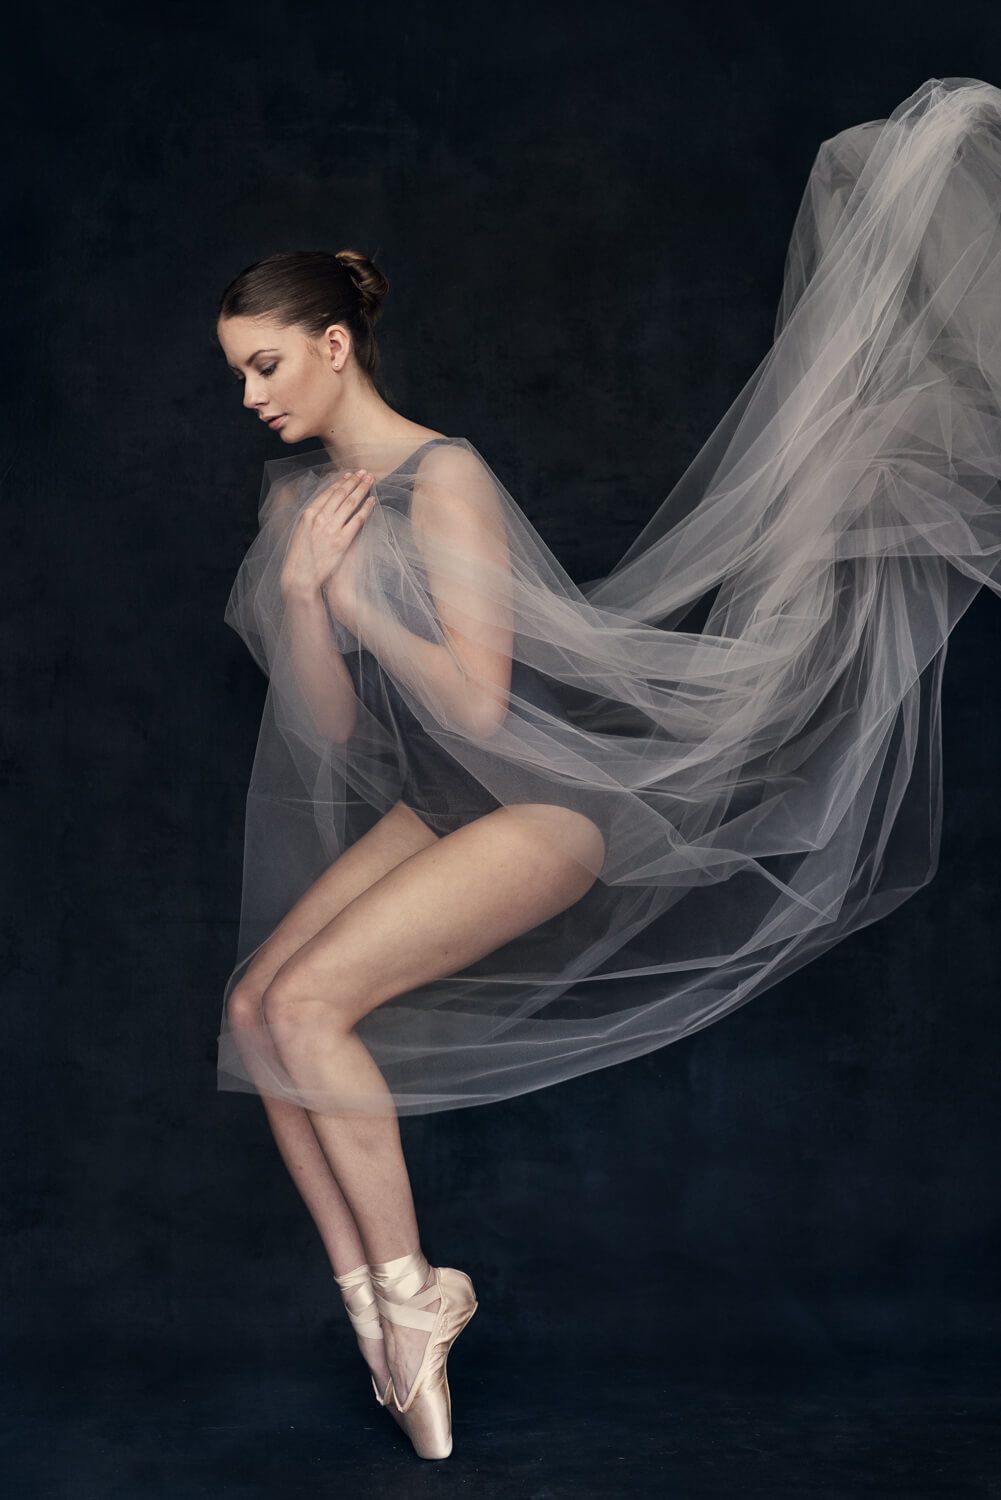 Briana on her pointe shoes dancing with a tulle fabrice flying behind her